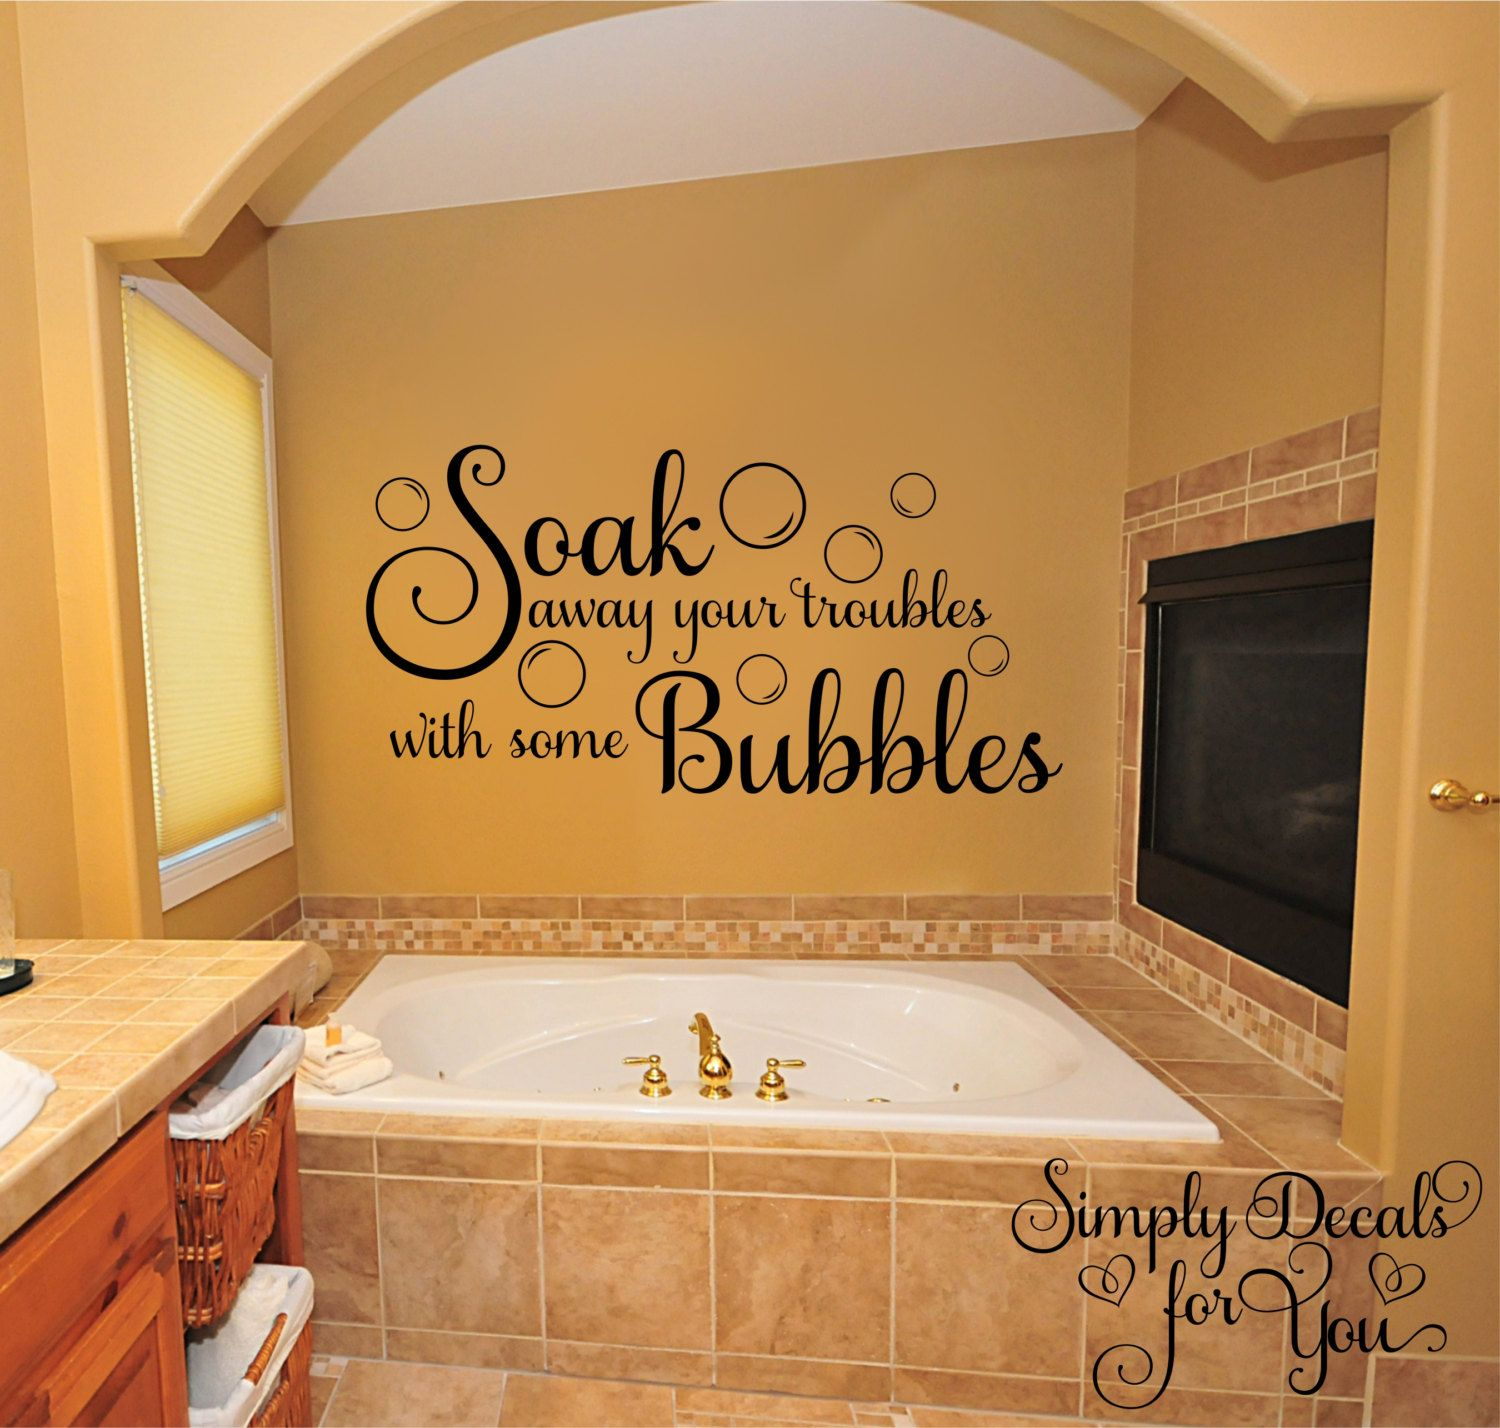 Bubble Bath Wall Decal Bathroom Decal Bathroom Sticker Wall Decal Wall Sticker Home Decor Vinyl Wall Bathroom Wall Decals Bathroom Decals Bathroom Vinyl